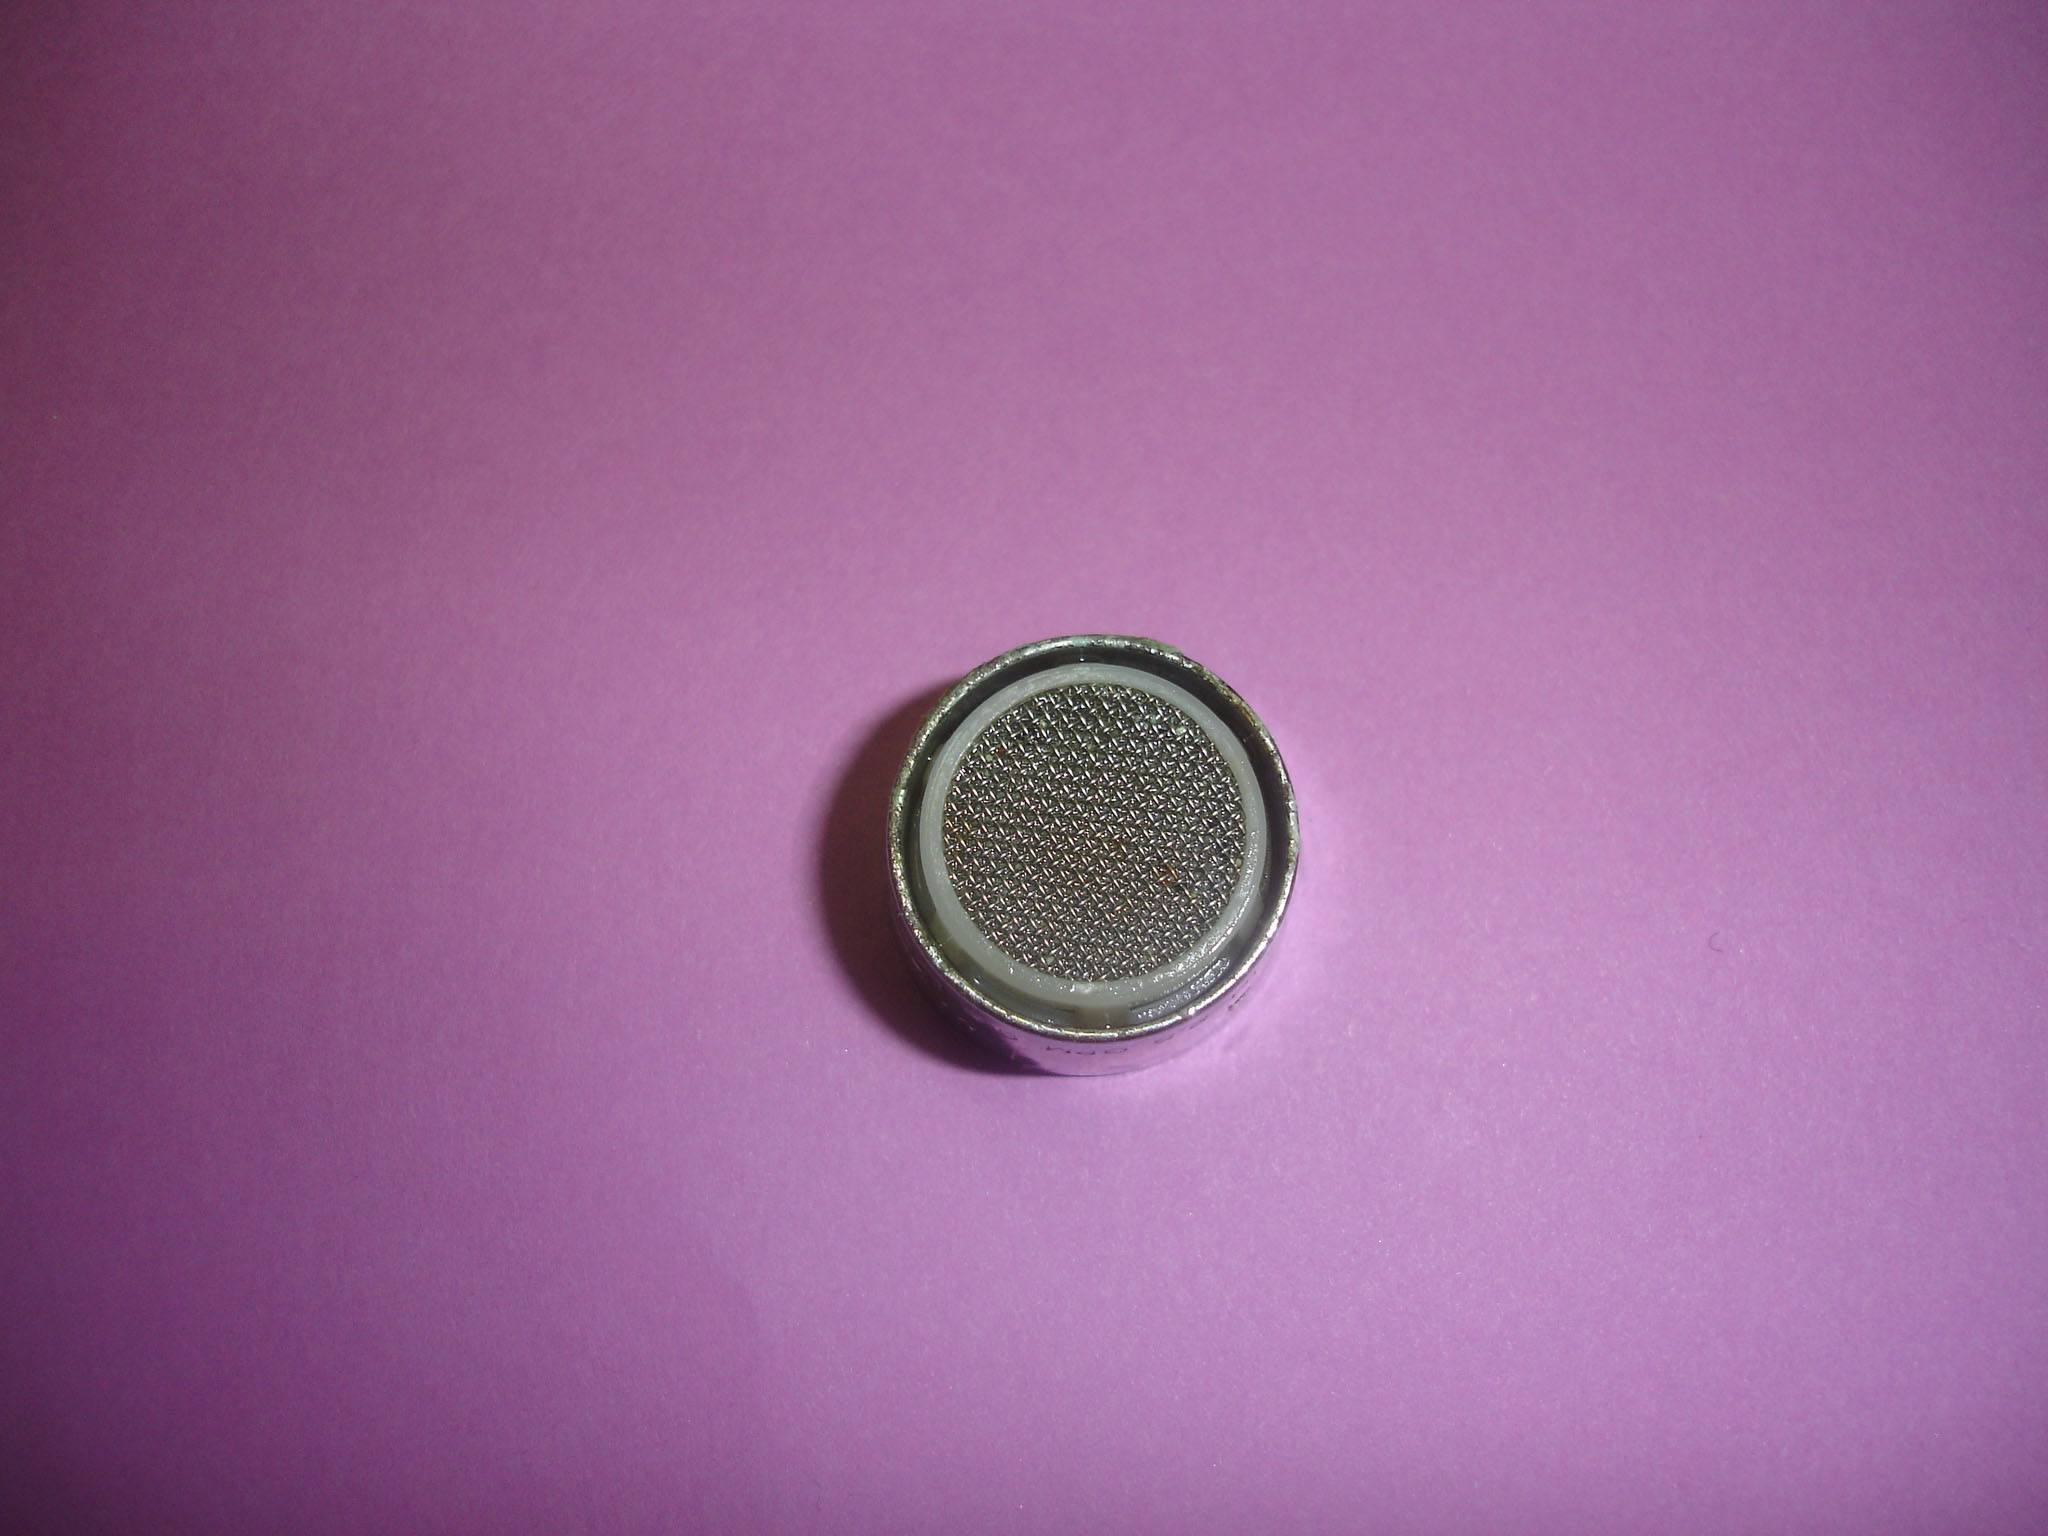 Close-up photo of the faucet aerator after being removed